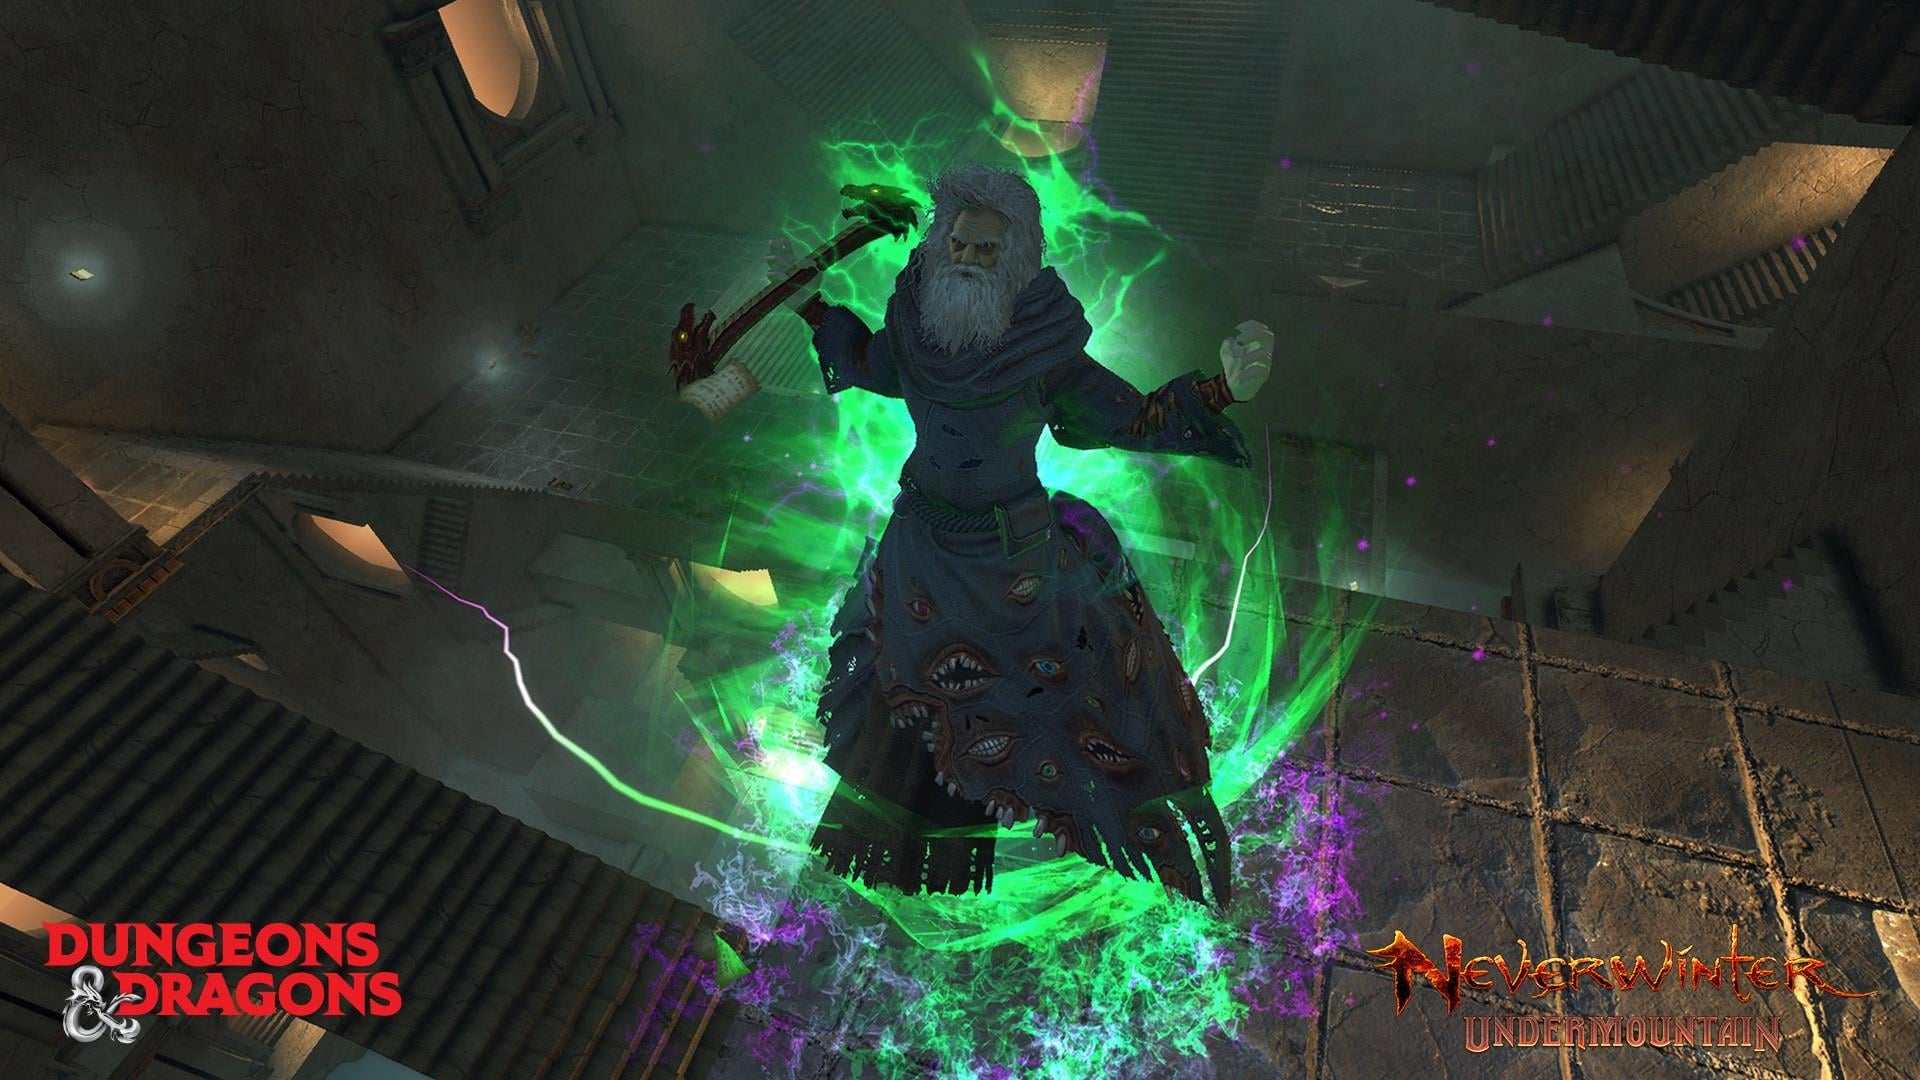 Neverwinter: Undermountain Now Available on Xbox One